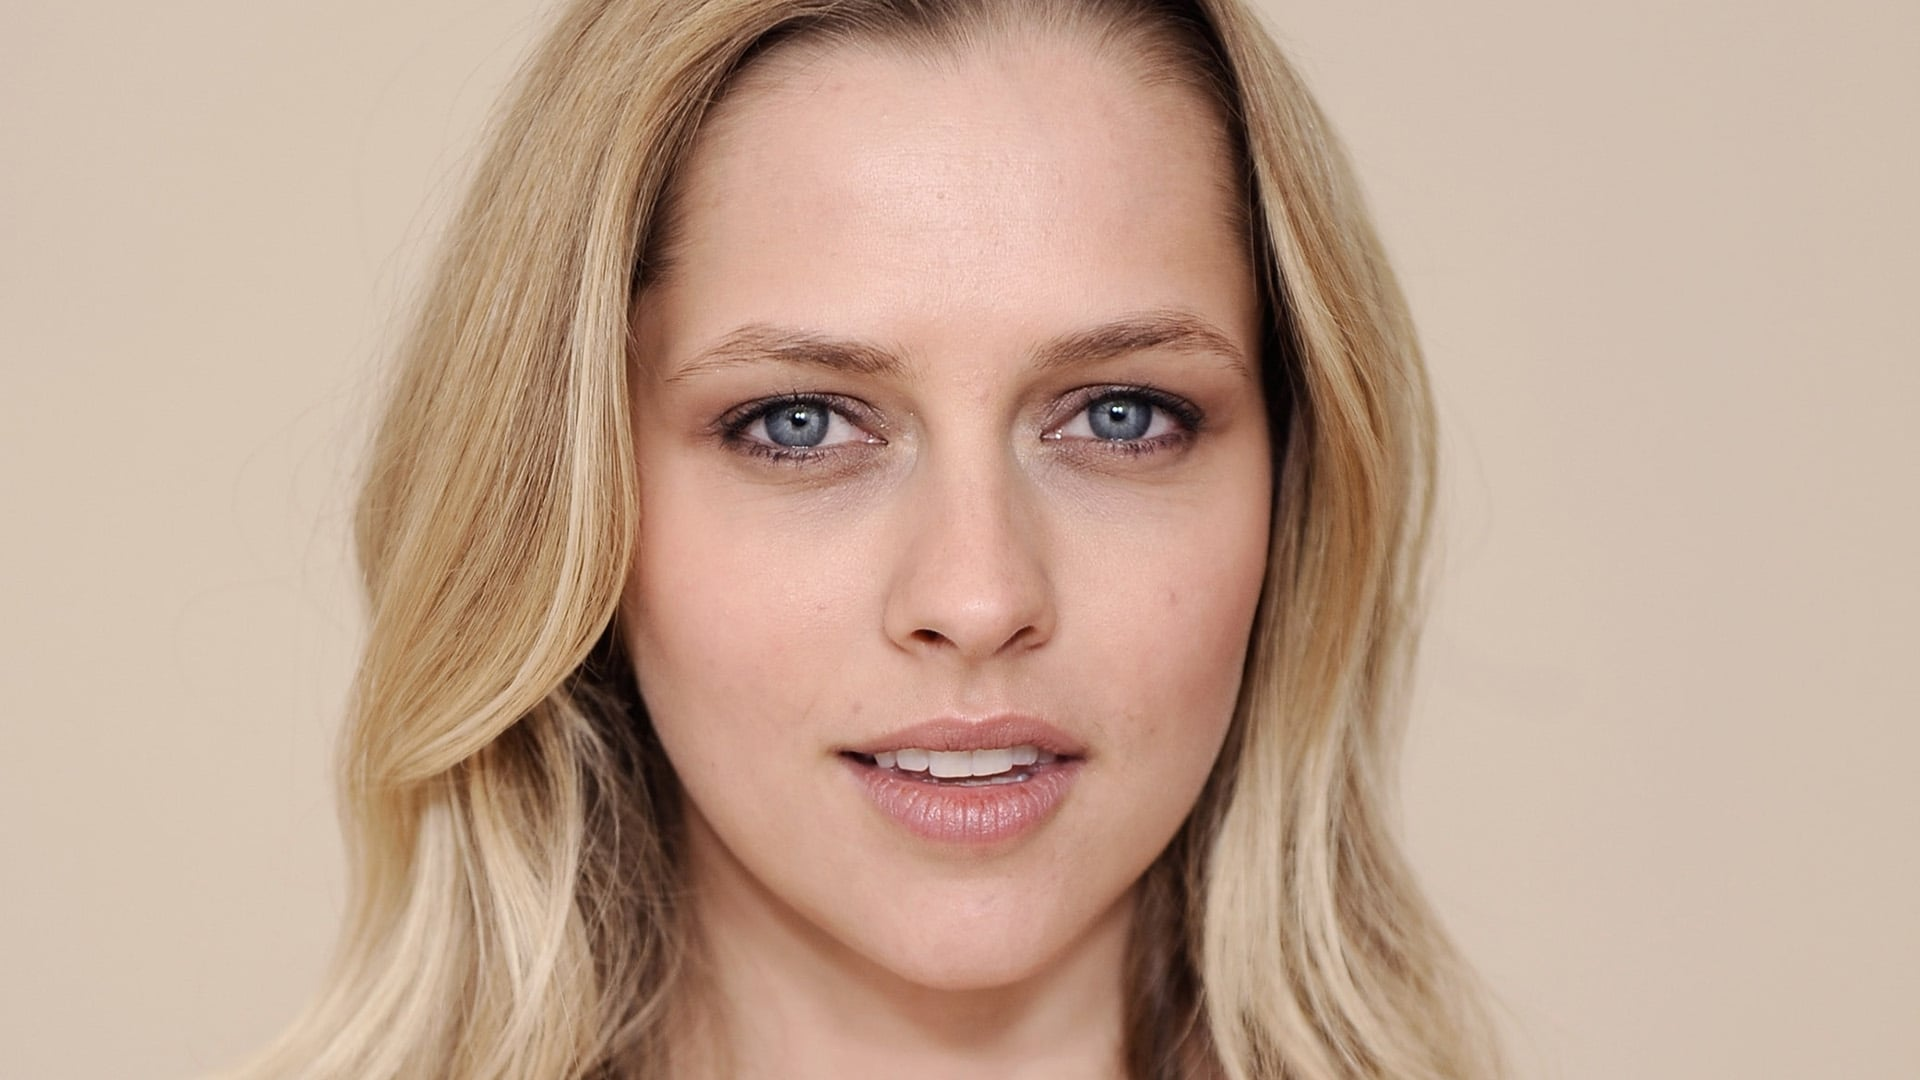 How To Set Wallpaper On Iphone X Teresa Palmer Face Wallpaper 53345 1920x1080 Px